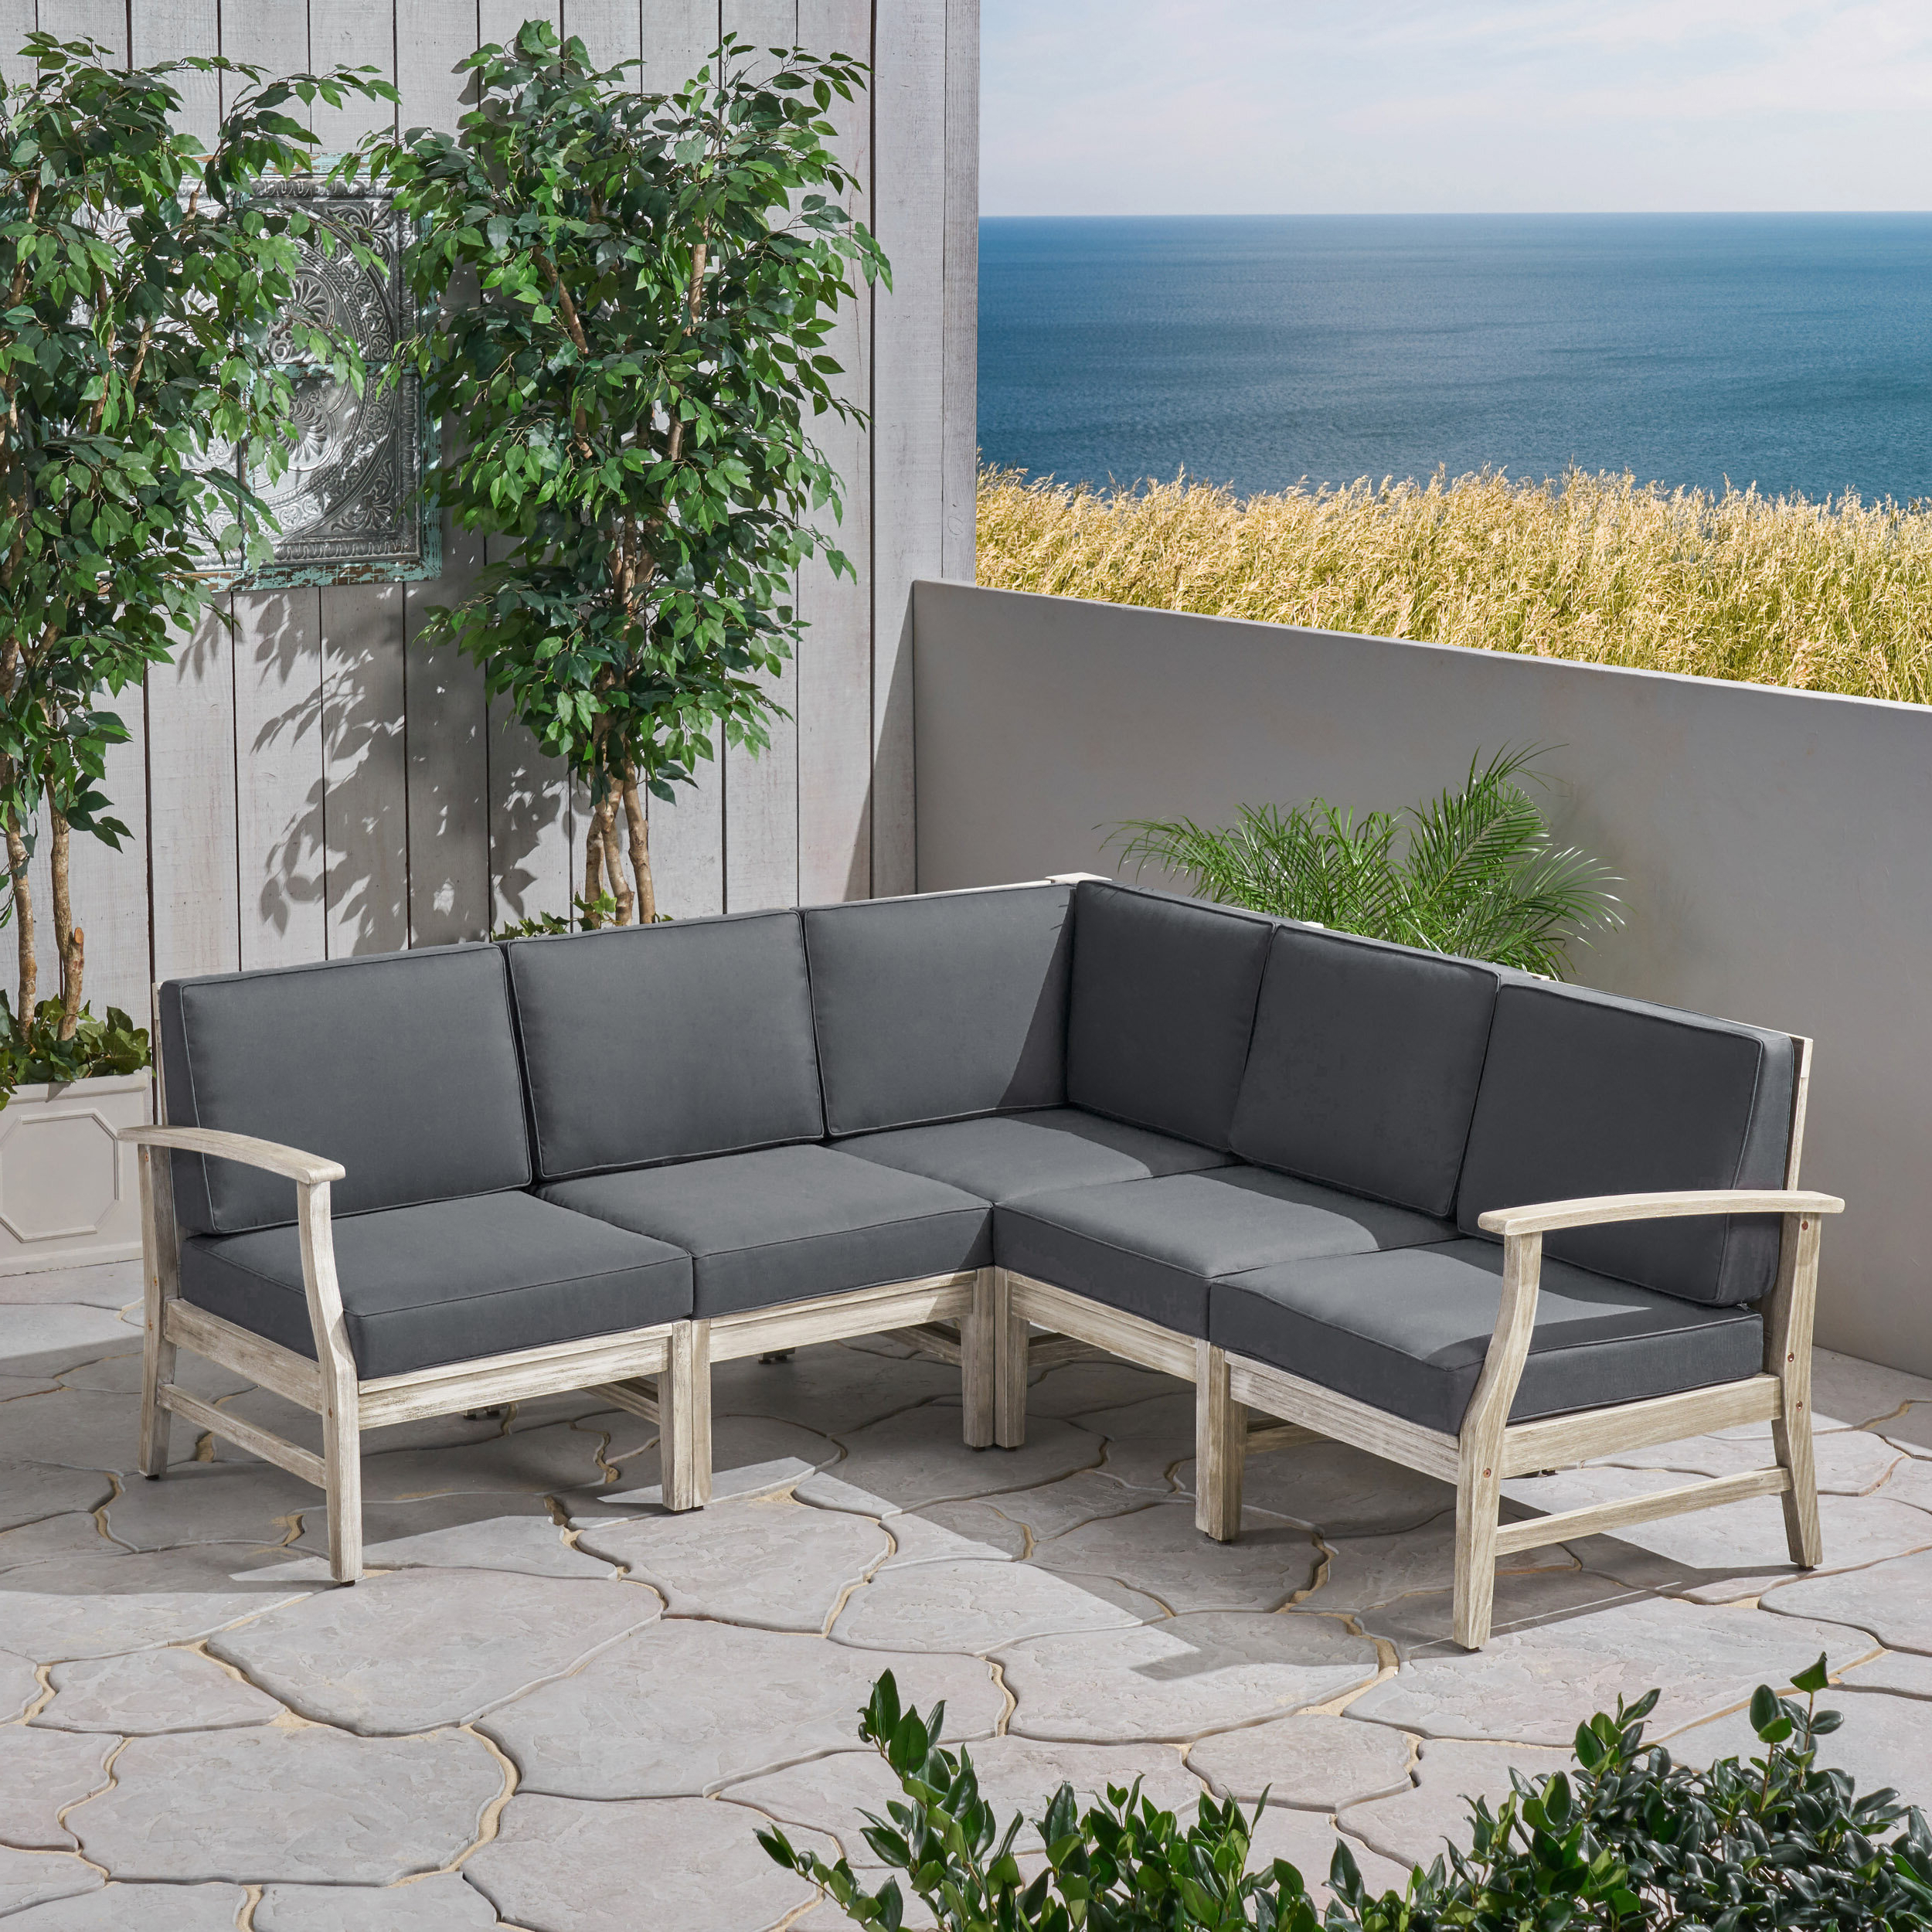 Brickhouse Patio Sectional With Cushions With Widely Used Catalina Outdoor Right Arm Sectional Pieces With Cushions (Gallery 22 of 25)